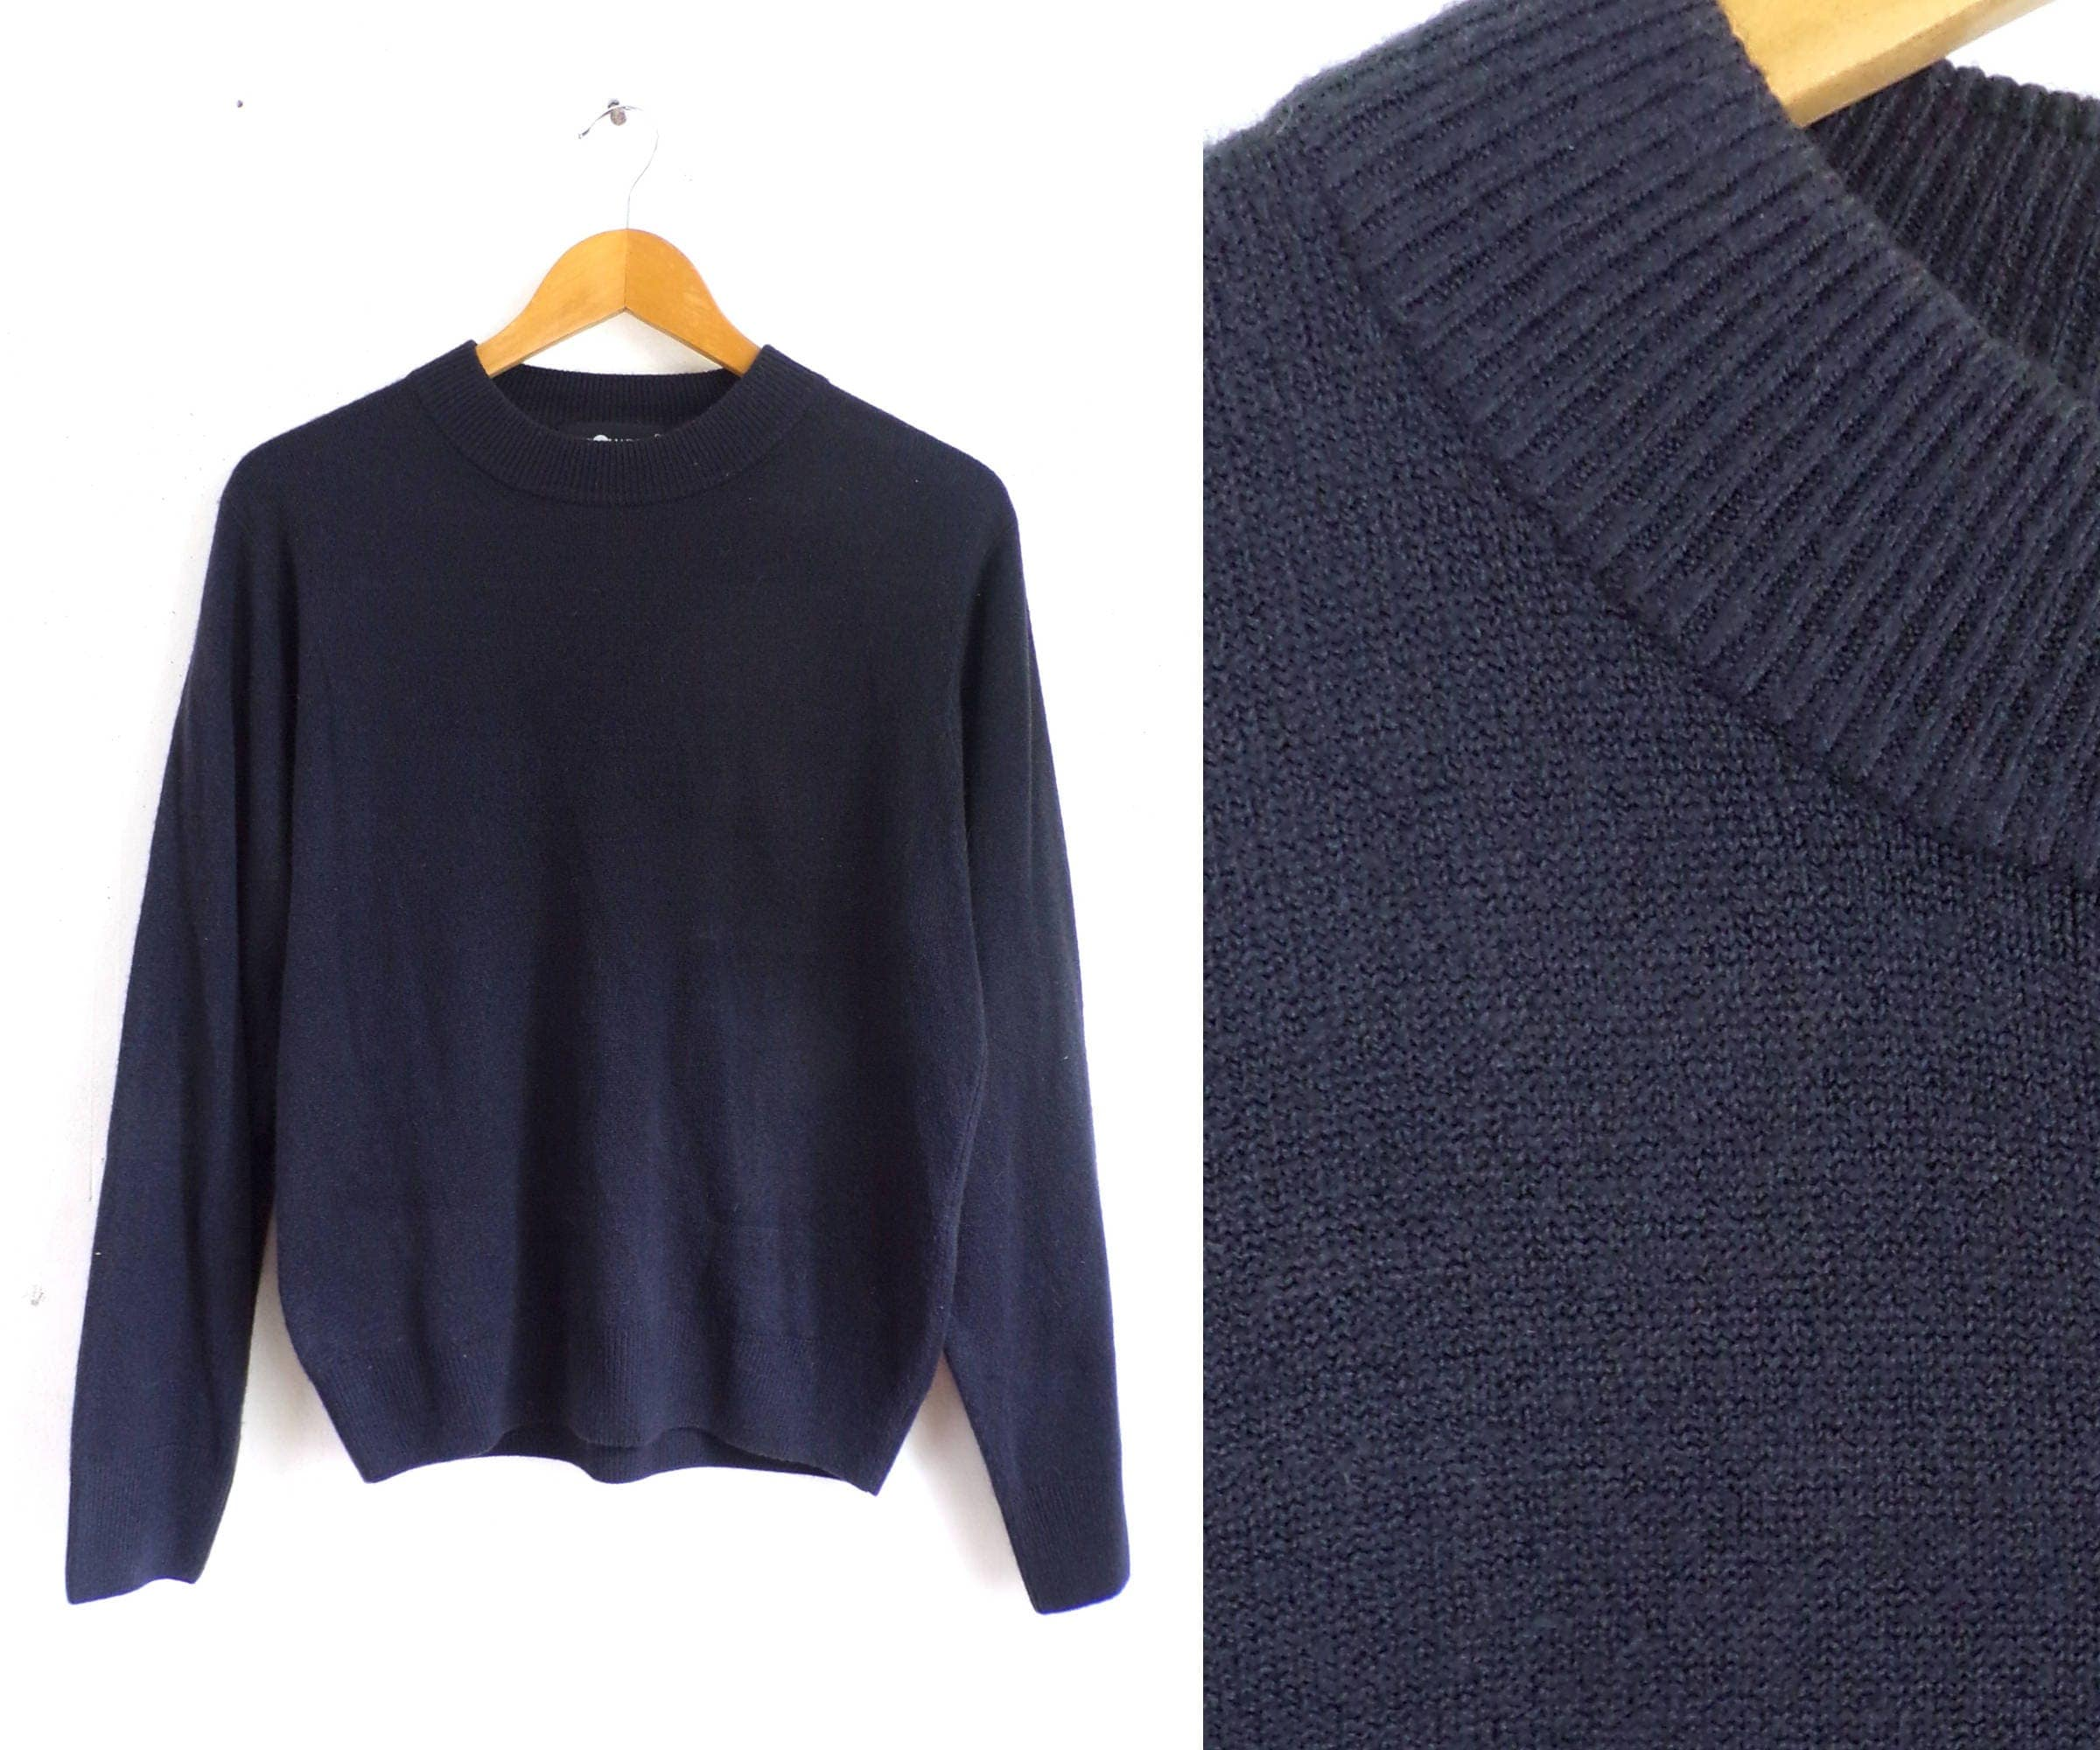 90s knit top dark midnight blue sweater top lightweight knit